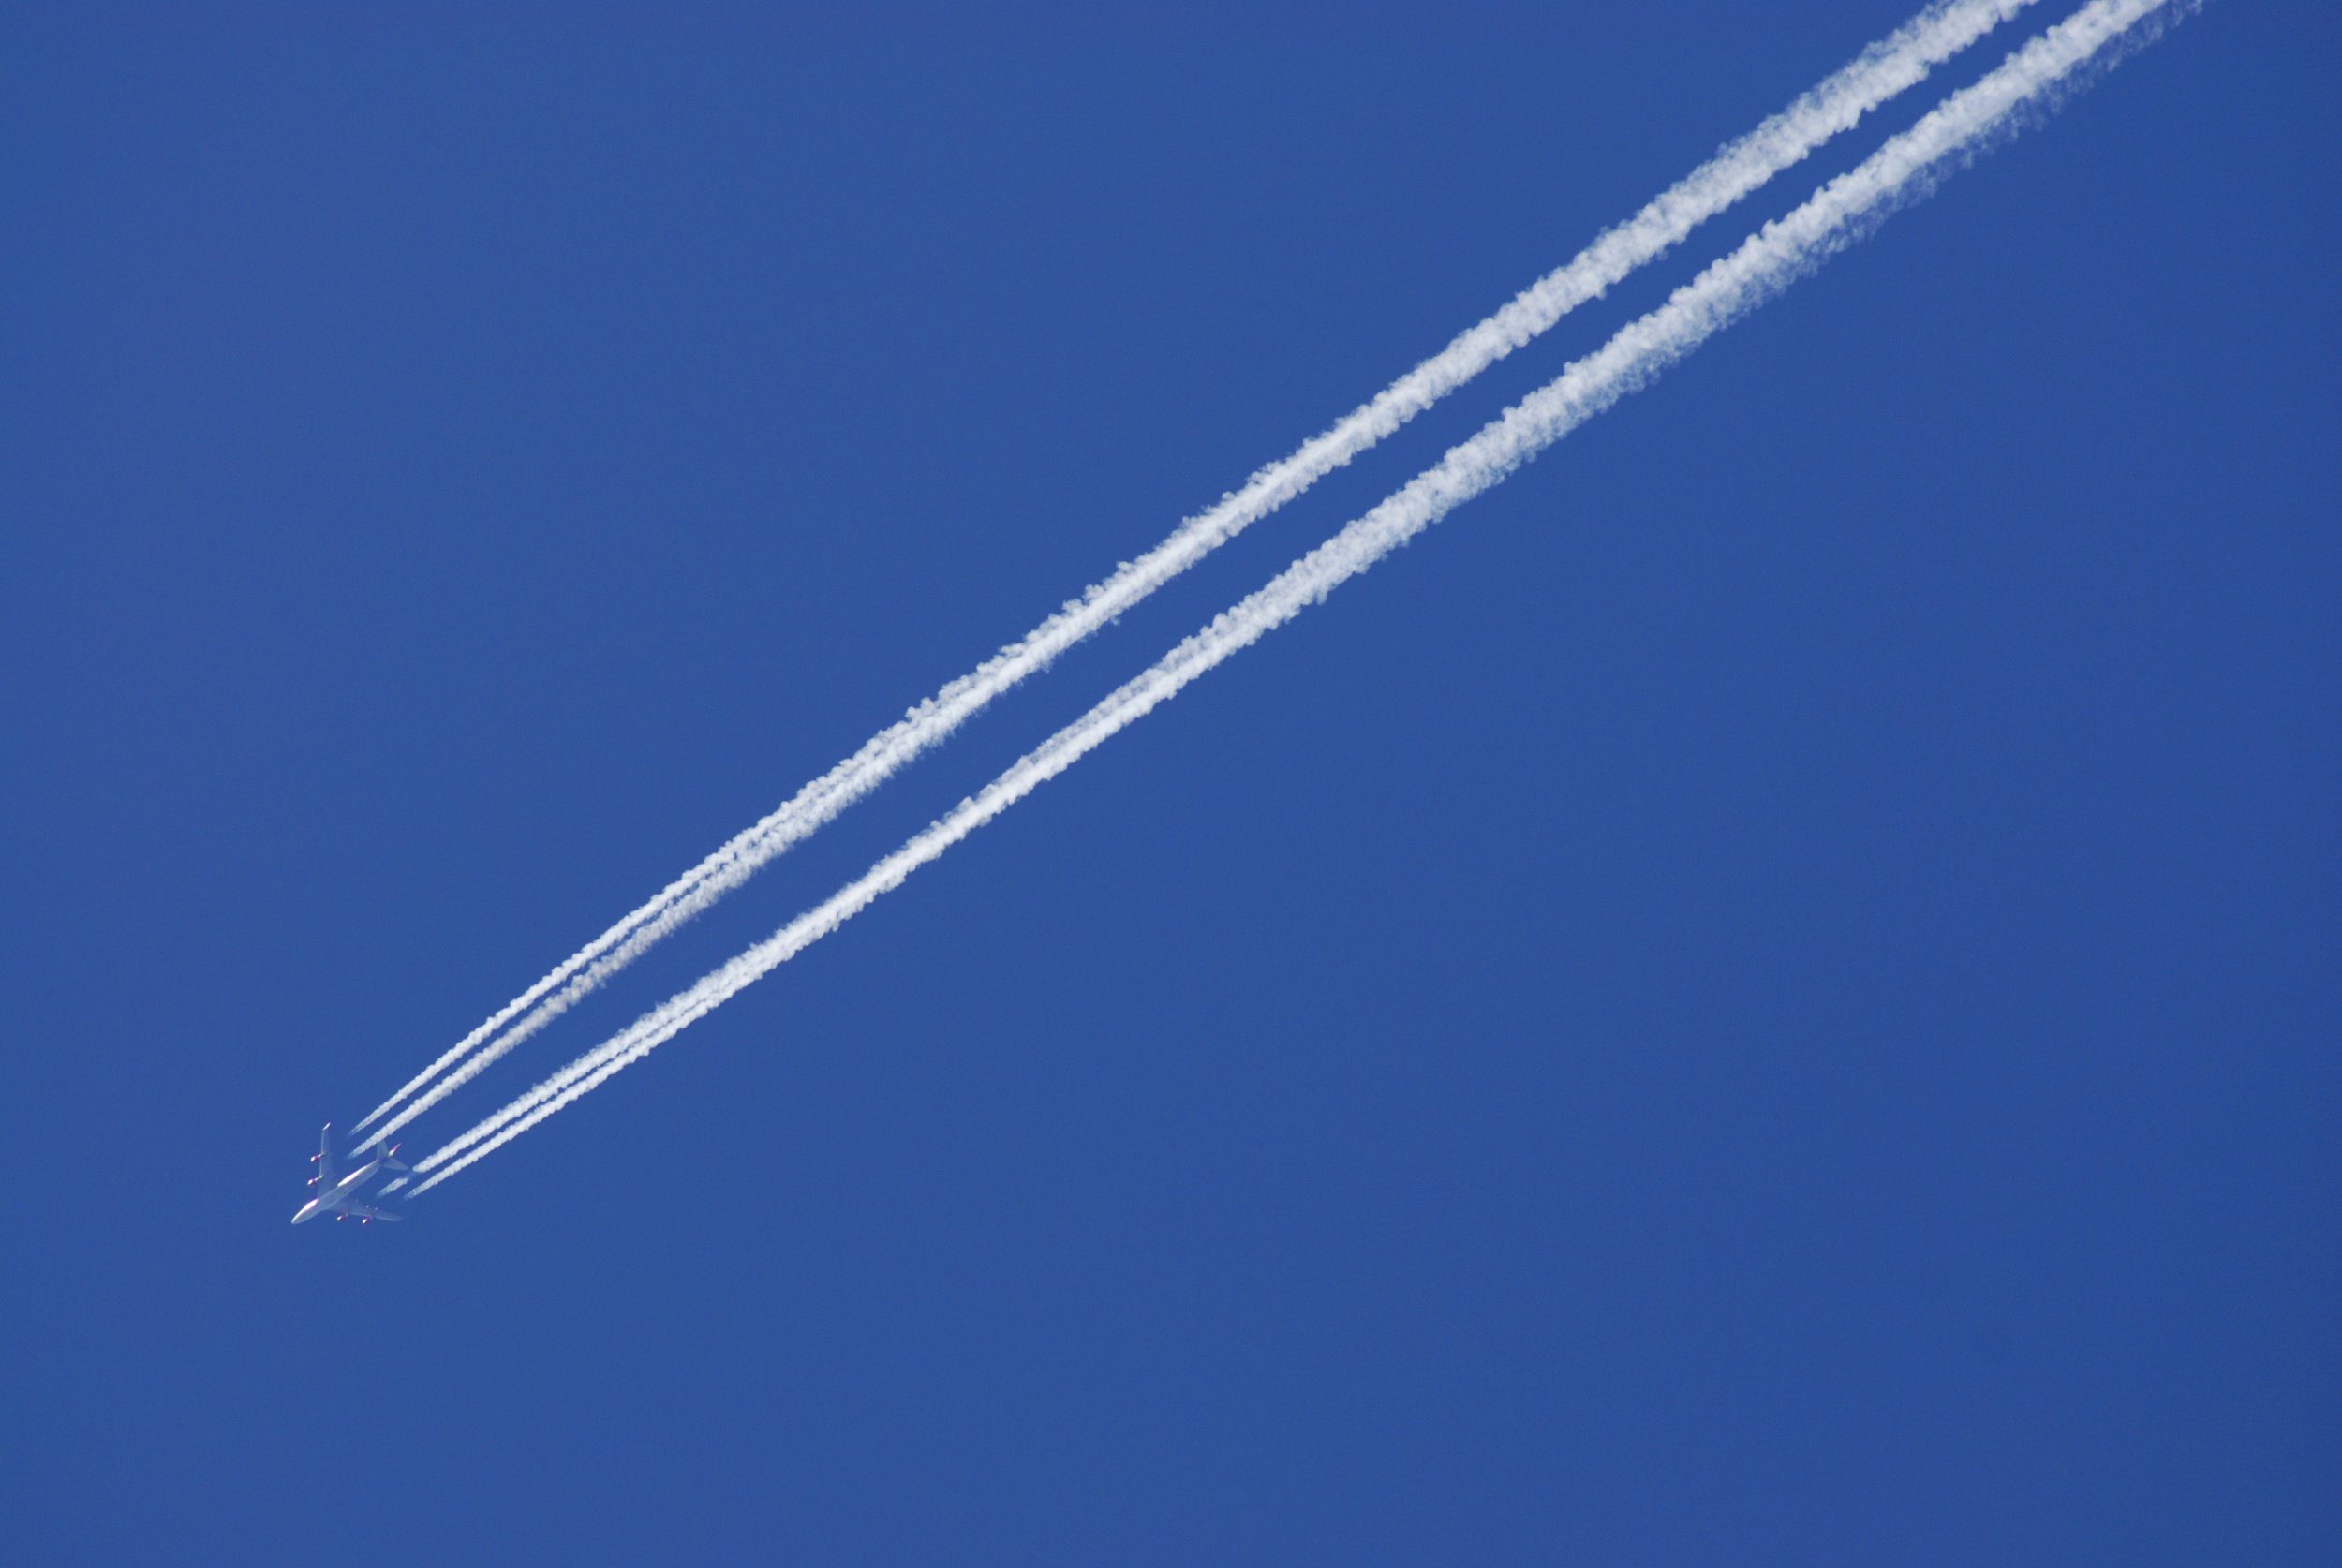 vapor trails or chemtrails from jets in sky often forming grid or triangular patterns. (Photo by Photofusion/Universal Images Group via Getty Images)